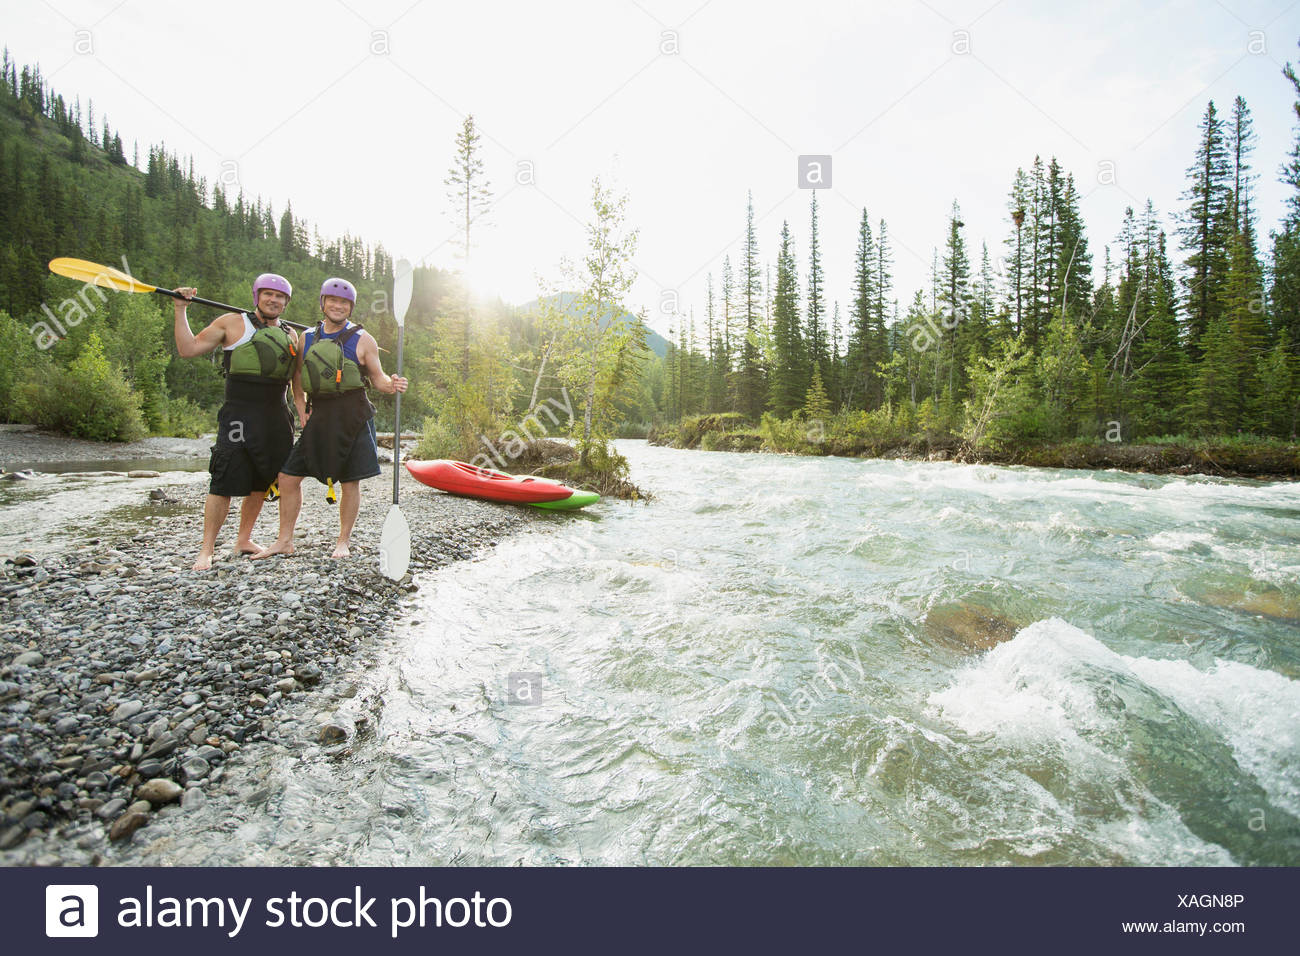 two male kayakers standing by a fast moving river - Stock Image